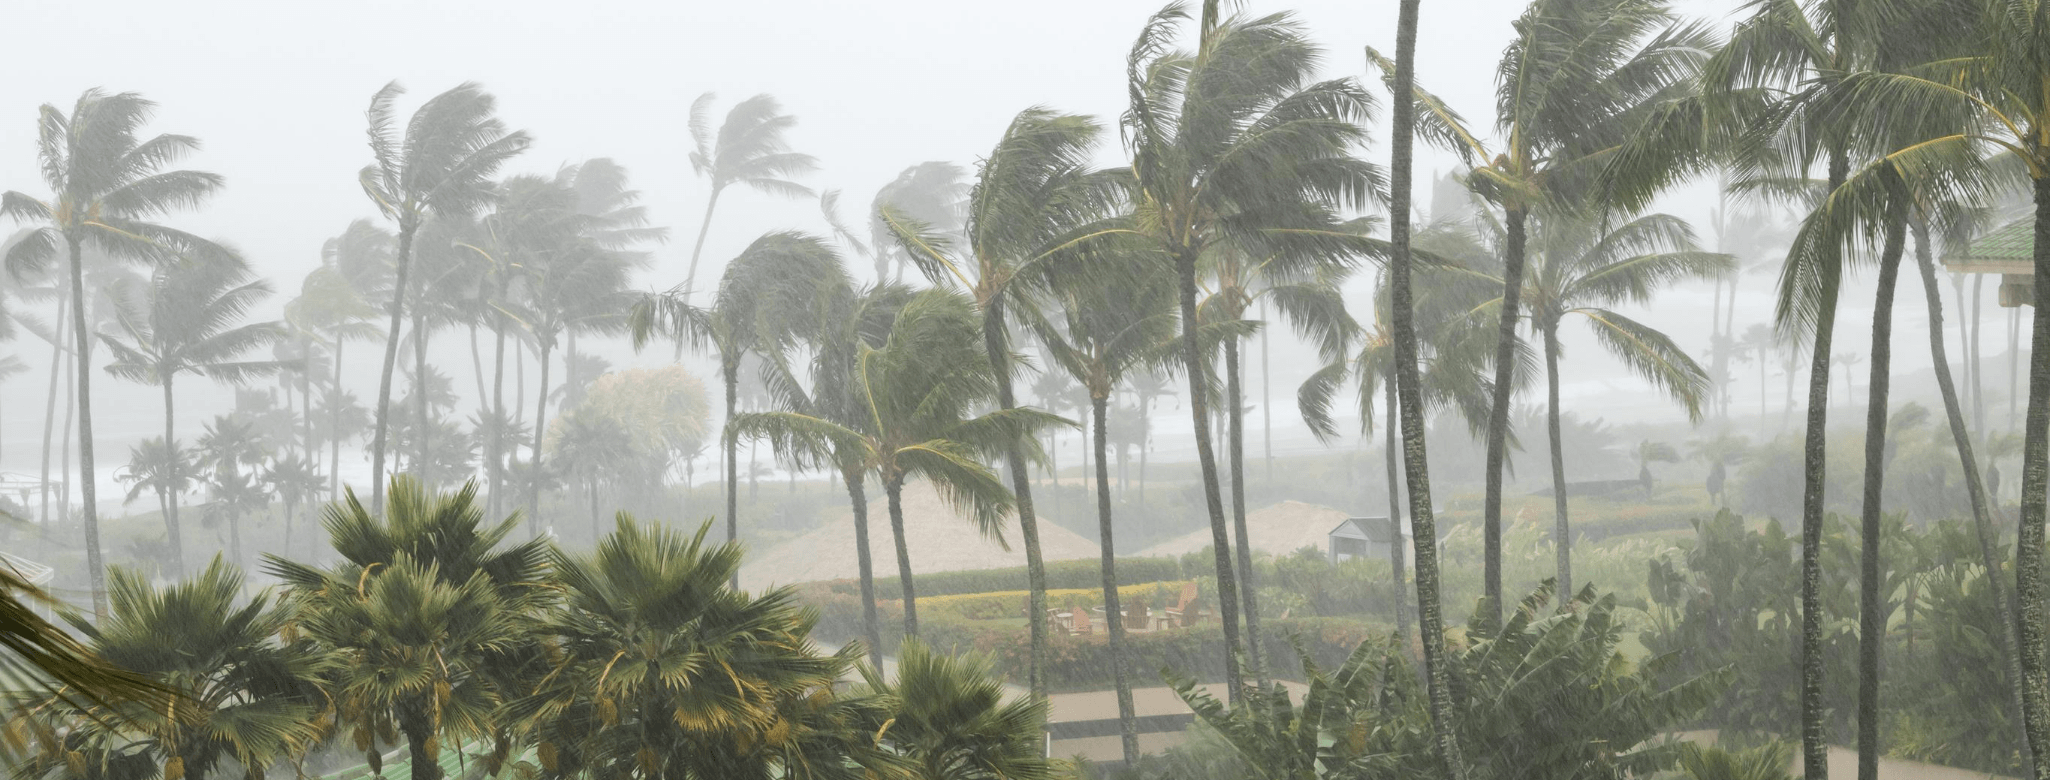 Hurricane Palm Trees